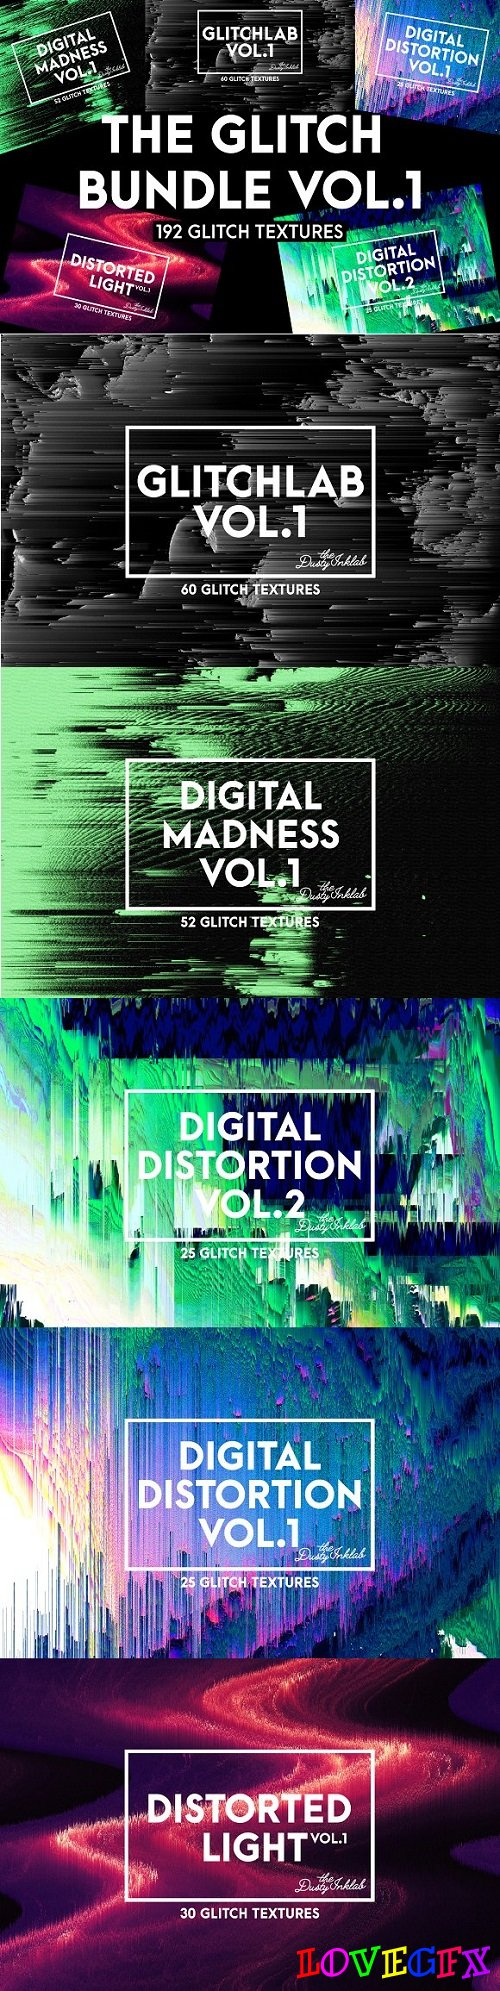 The Glitch Bundle Vol. 1 2217381